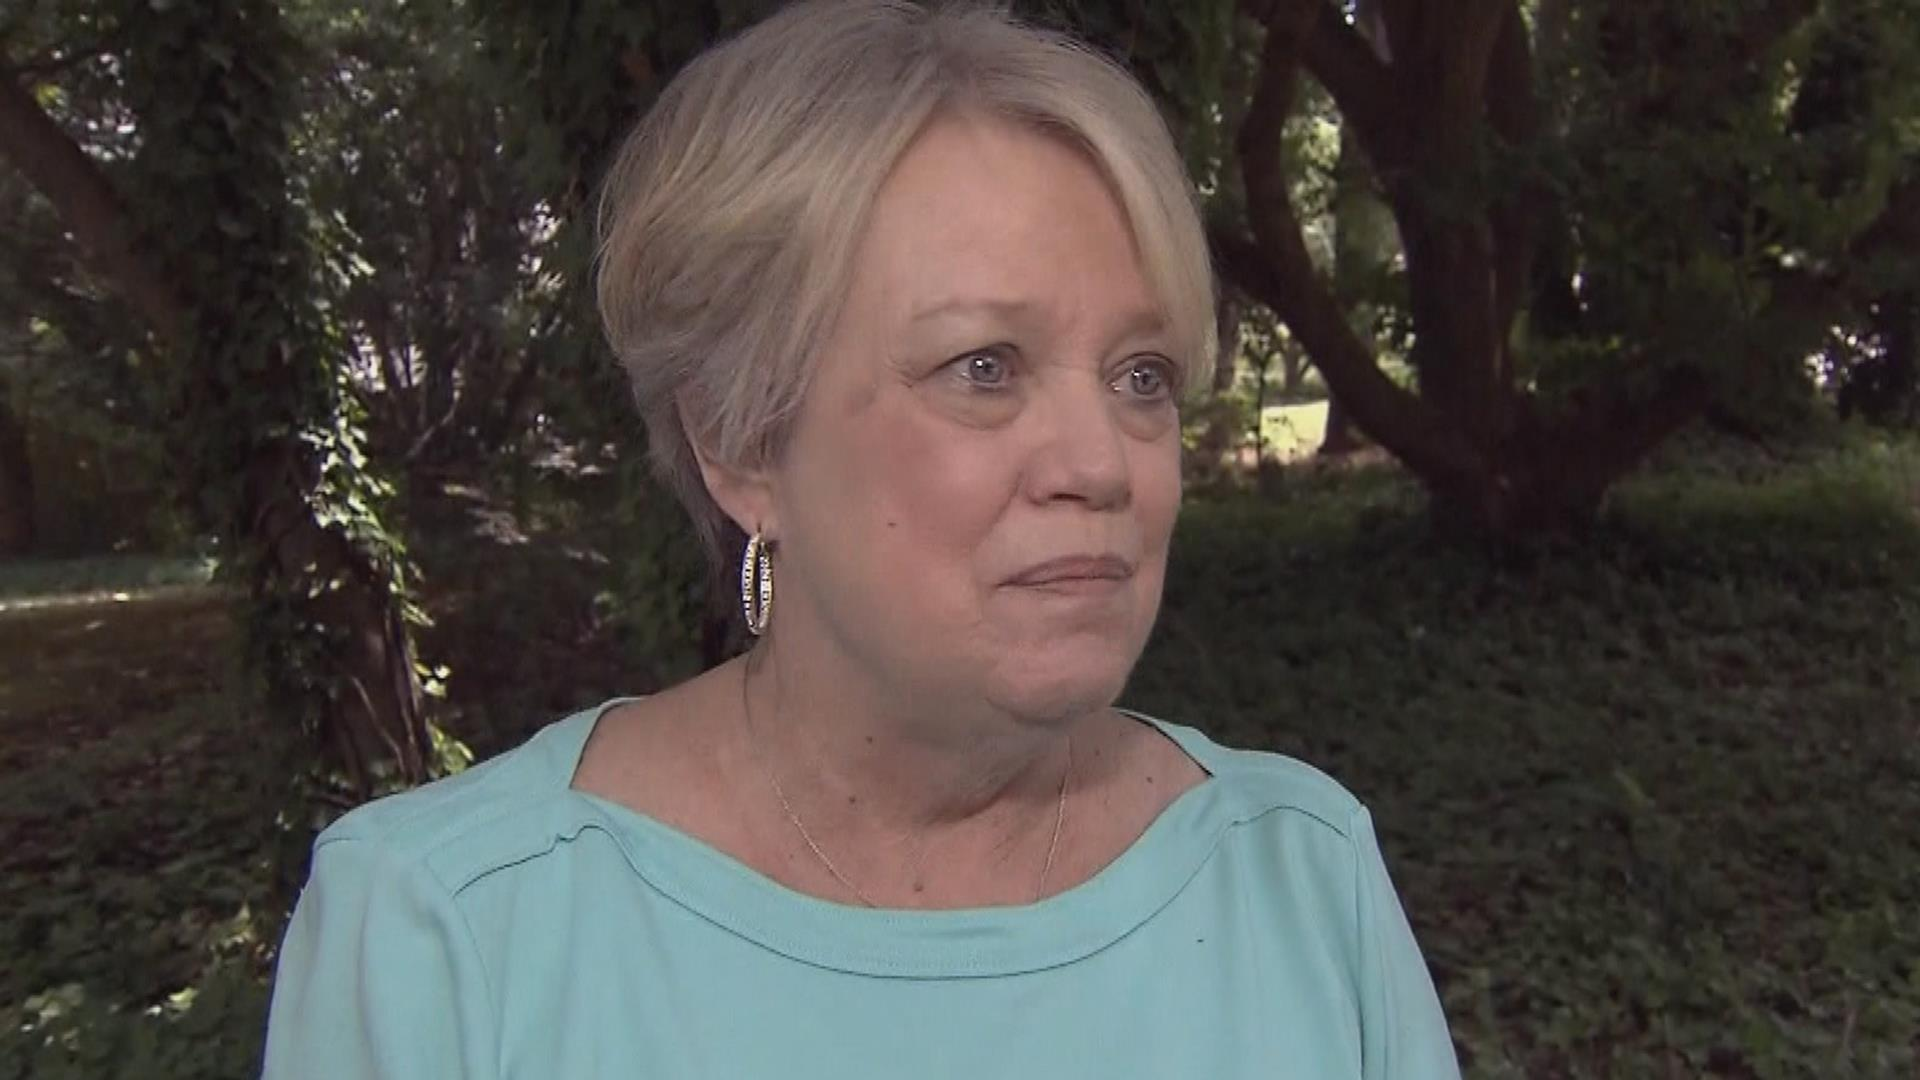 White woman caught on video calling black women N-word said she's not sorry, would do it again